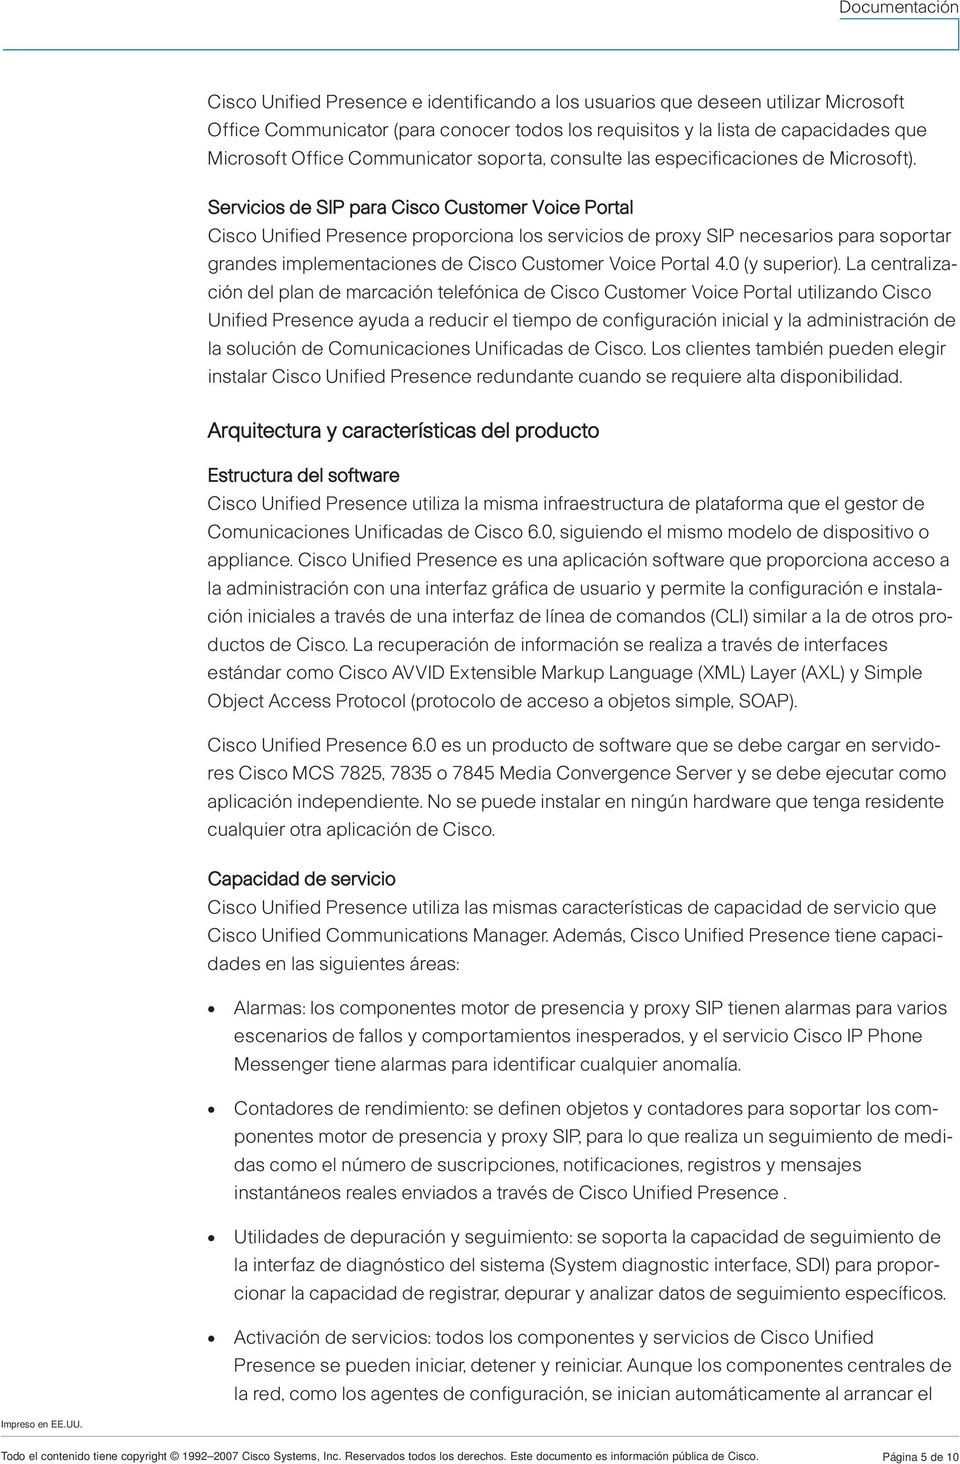 Servicios de SIP para Cisco Customer Voice Portal Cisco Unified Presence proporciona los servicios de proxy SIP necesarios para soportar grandes implementaciones de Cisco Customer Voice Portal 4.